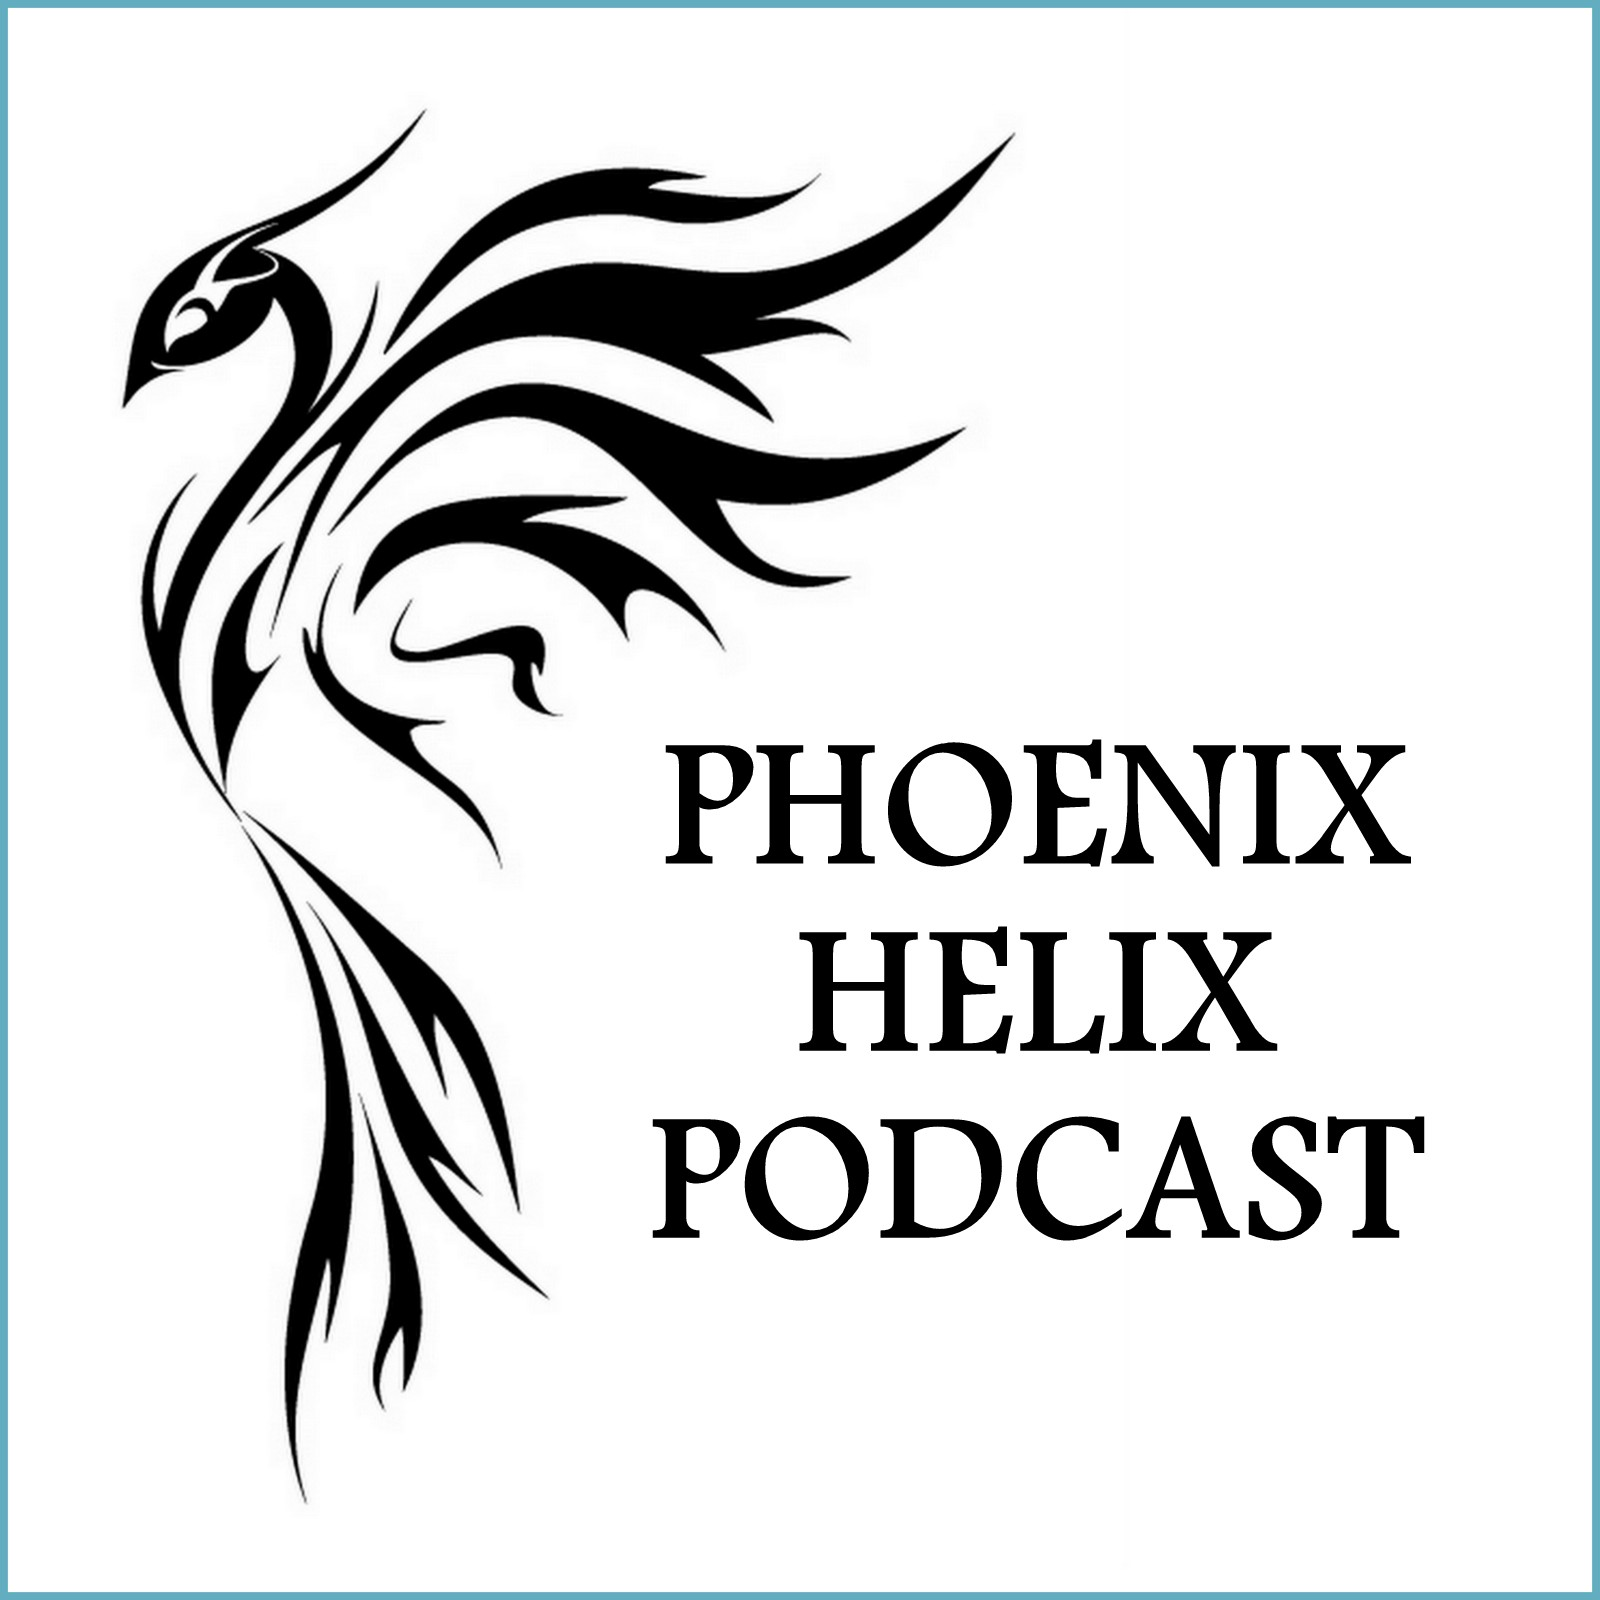 Episode 65 of the Phoenix Helix Podcast: Brain Health with Dr. David Perlmutter